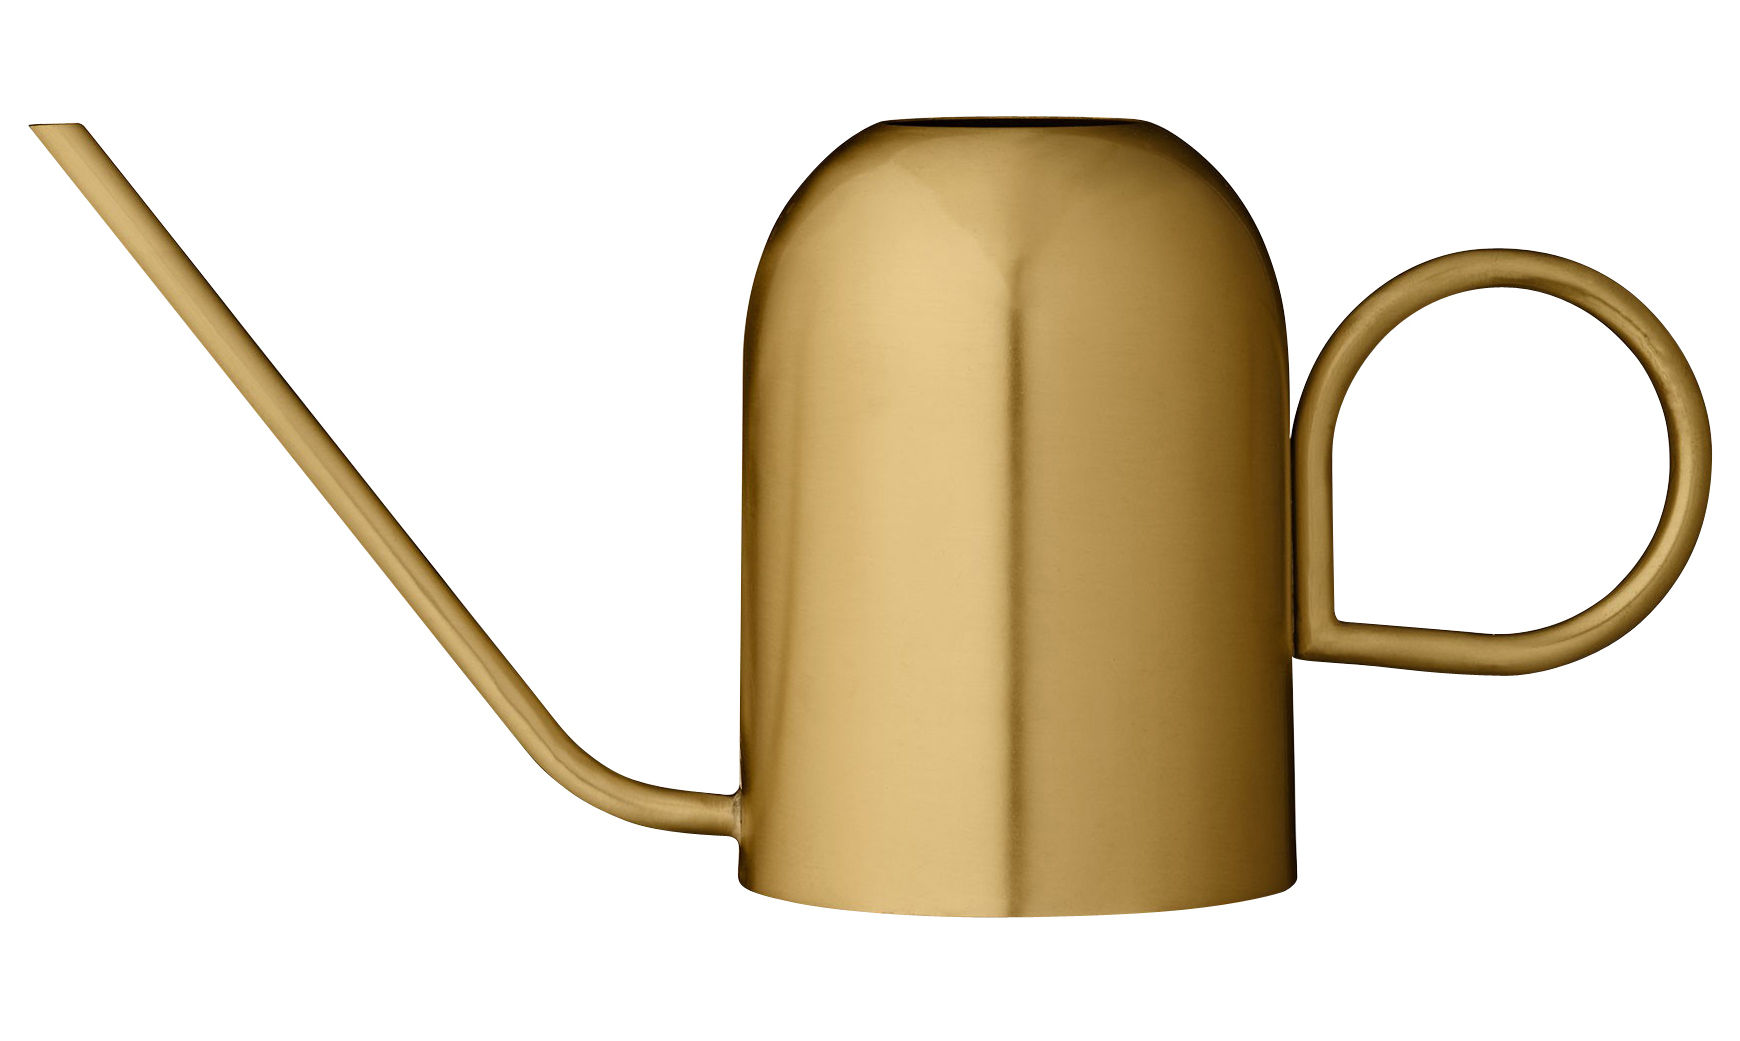 Outdoor - Pots & Plants - Vivero Watering can - Brass by AYTM - Brass - Lacquered brass